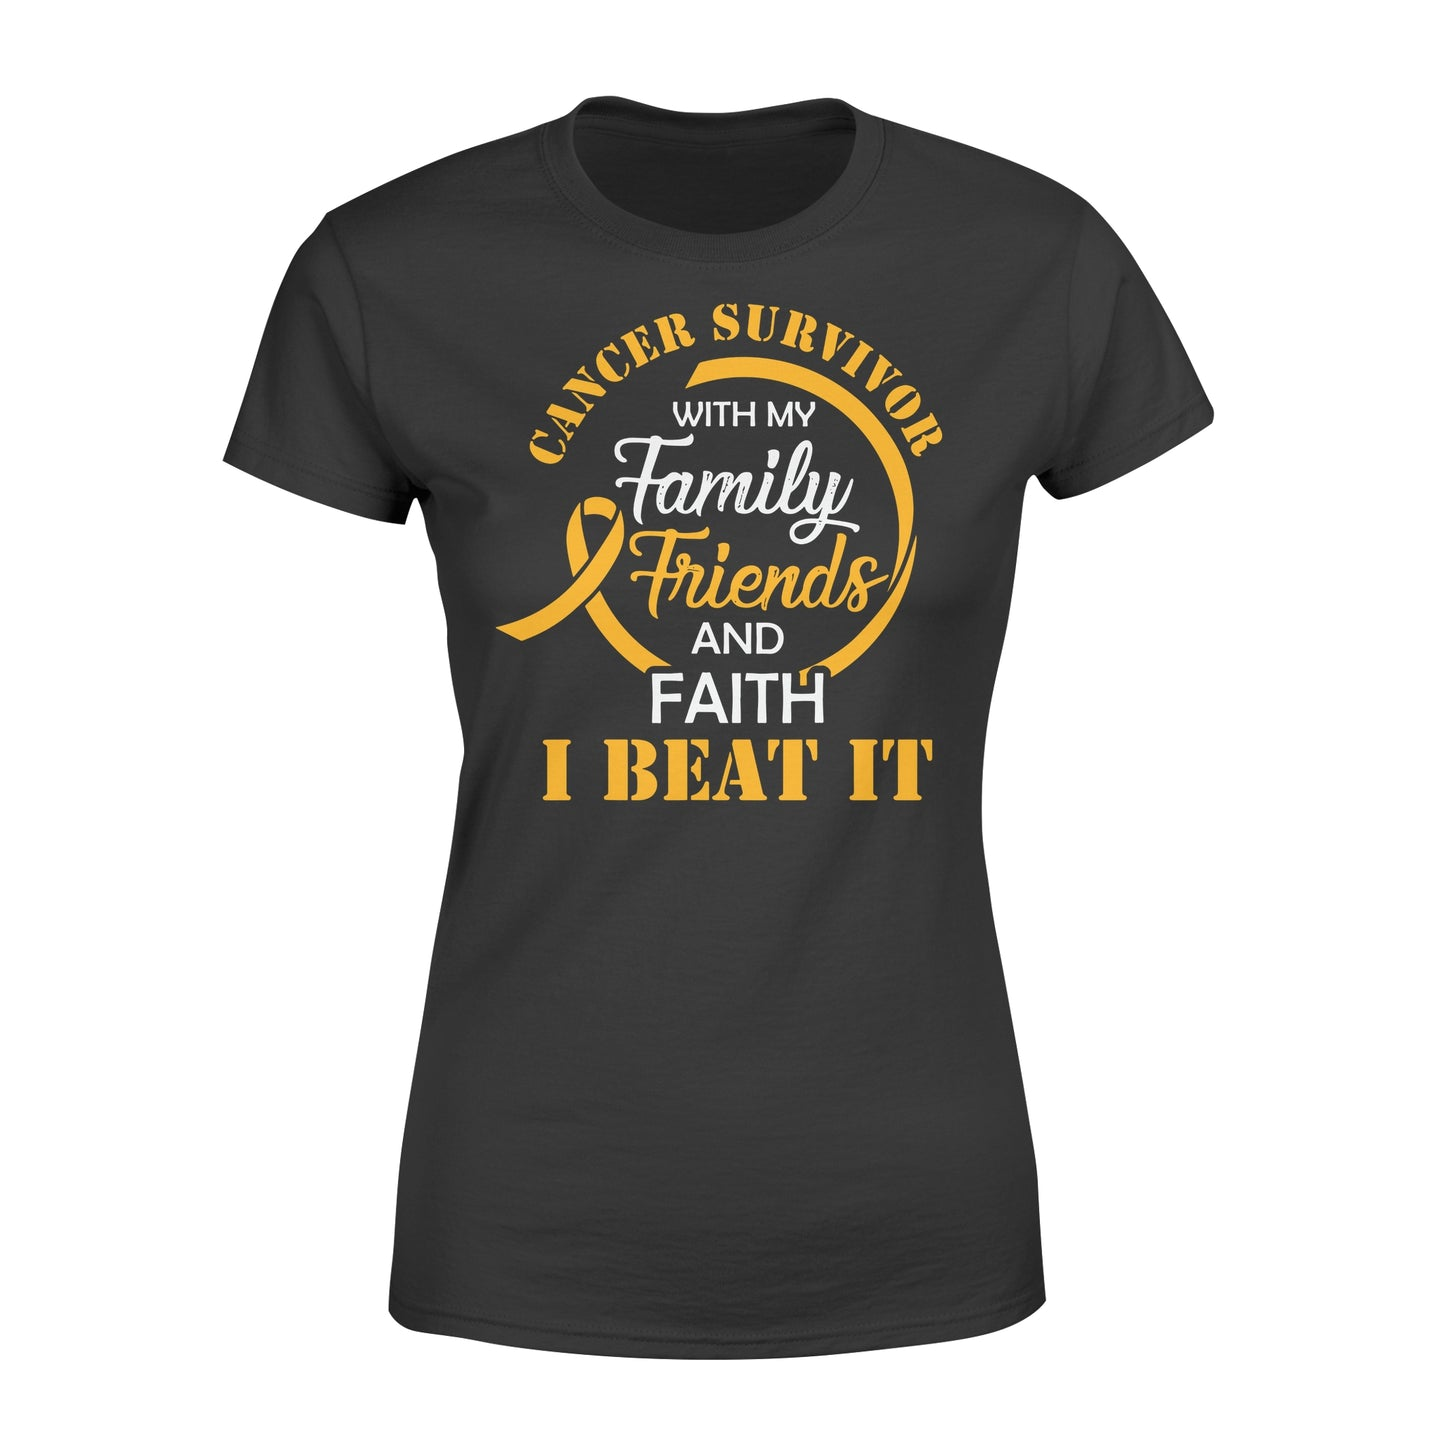 Cancer Survivor With My Family Friends - Faith I Beat It - Standard Women's T-shirt Apparel XS / Black